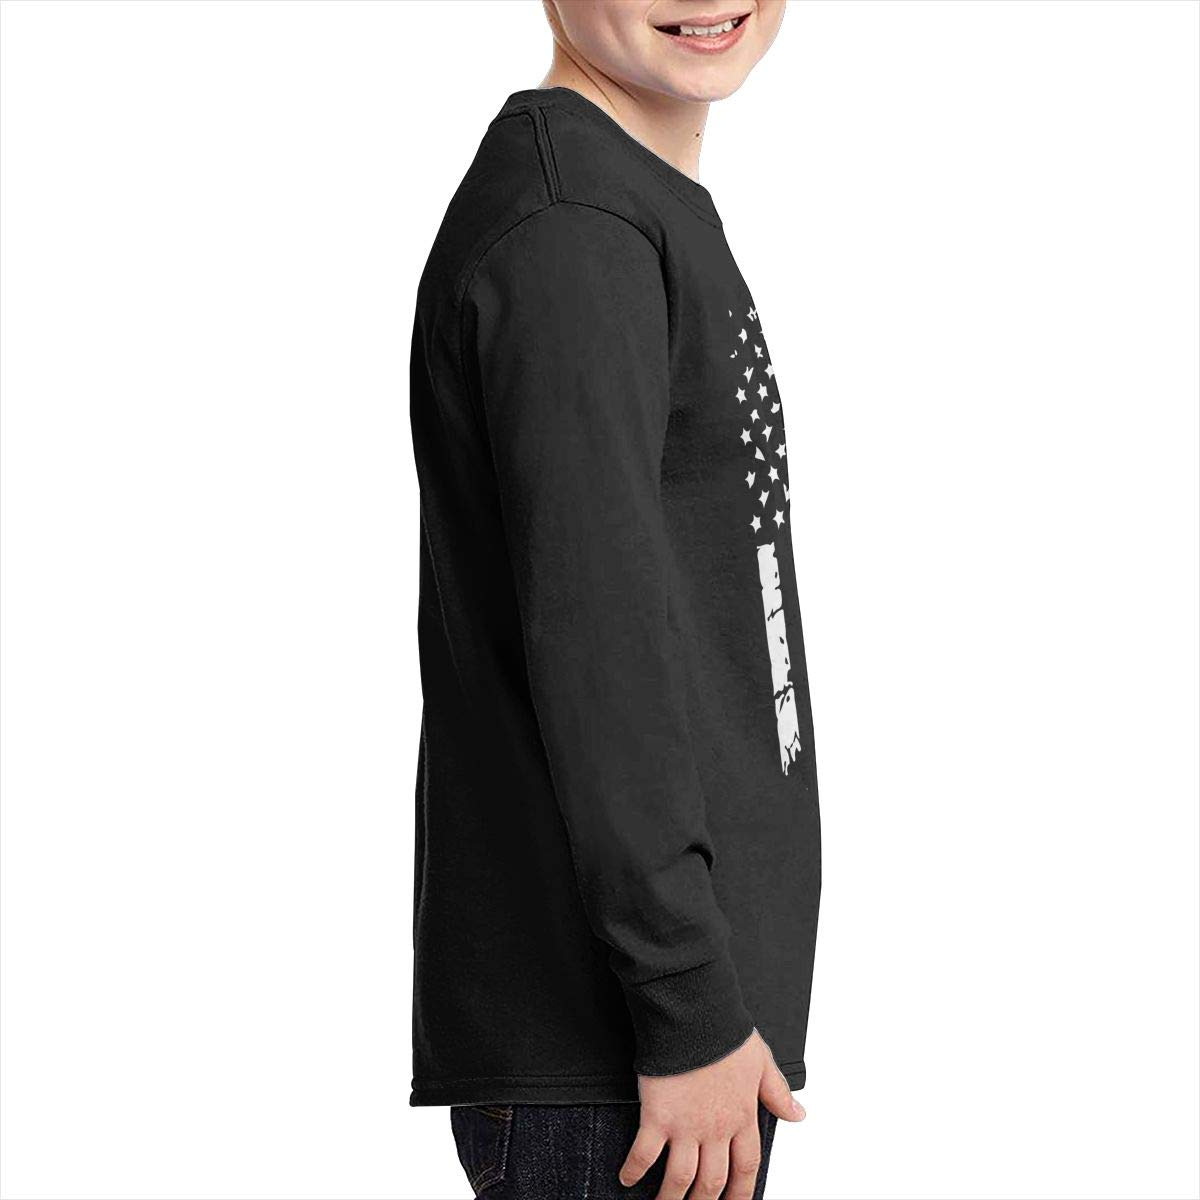 Teenagers Teen Boy Down Syndrome Awareness Flag Printed Long Sleeve 100/% Cotton Tops